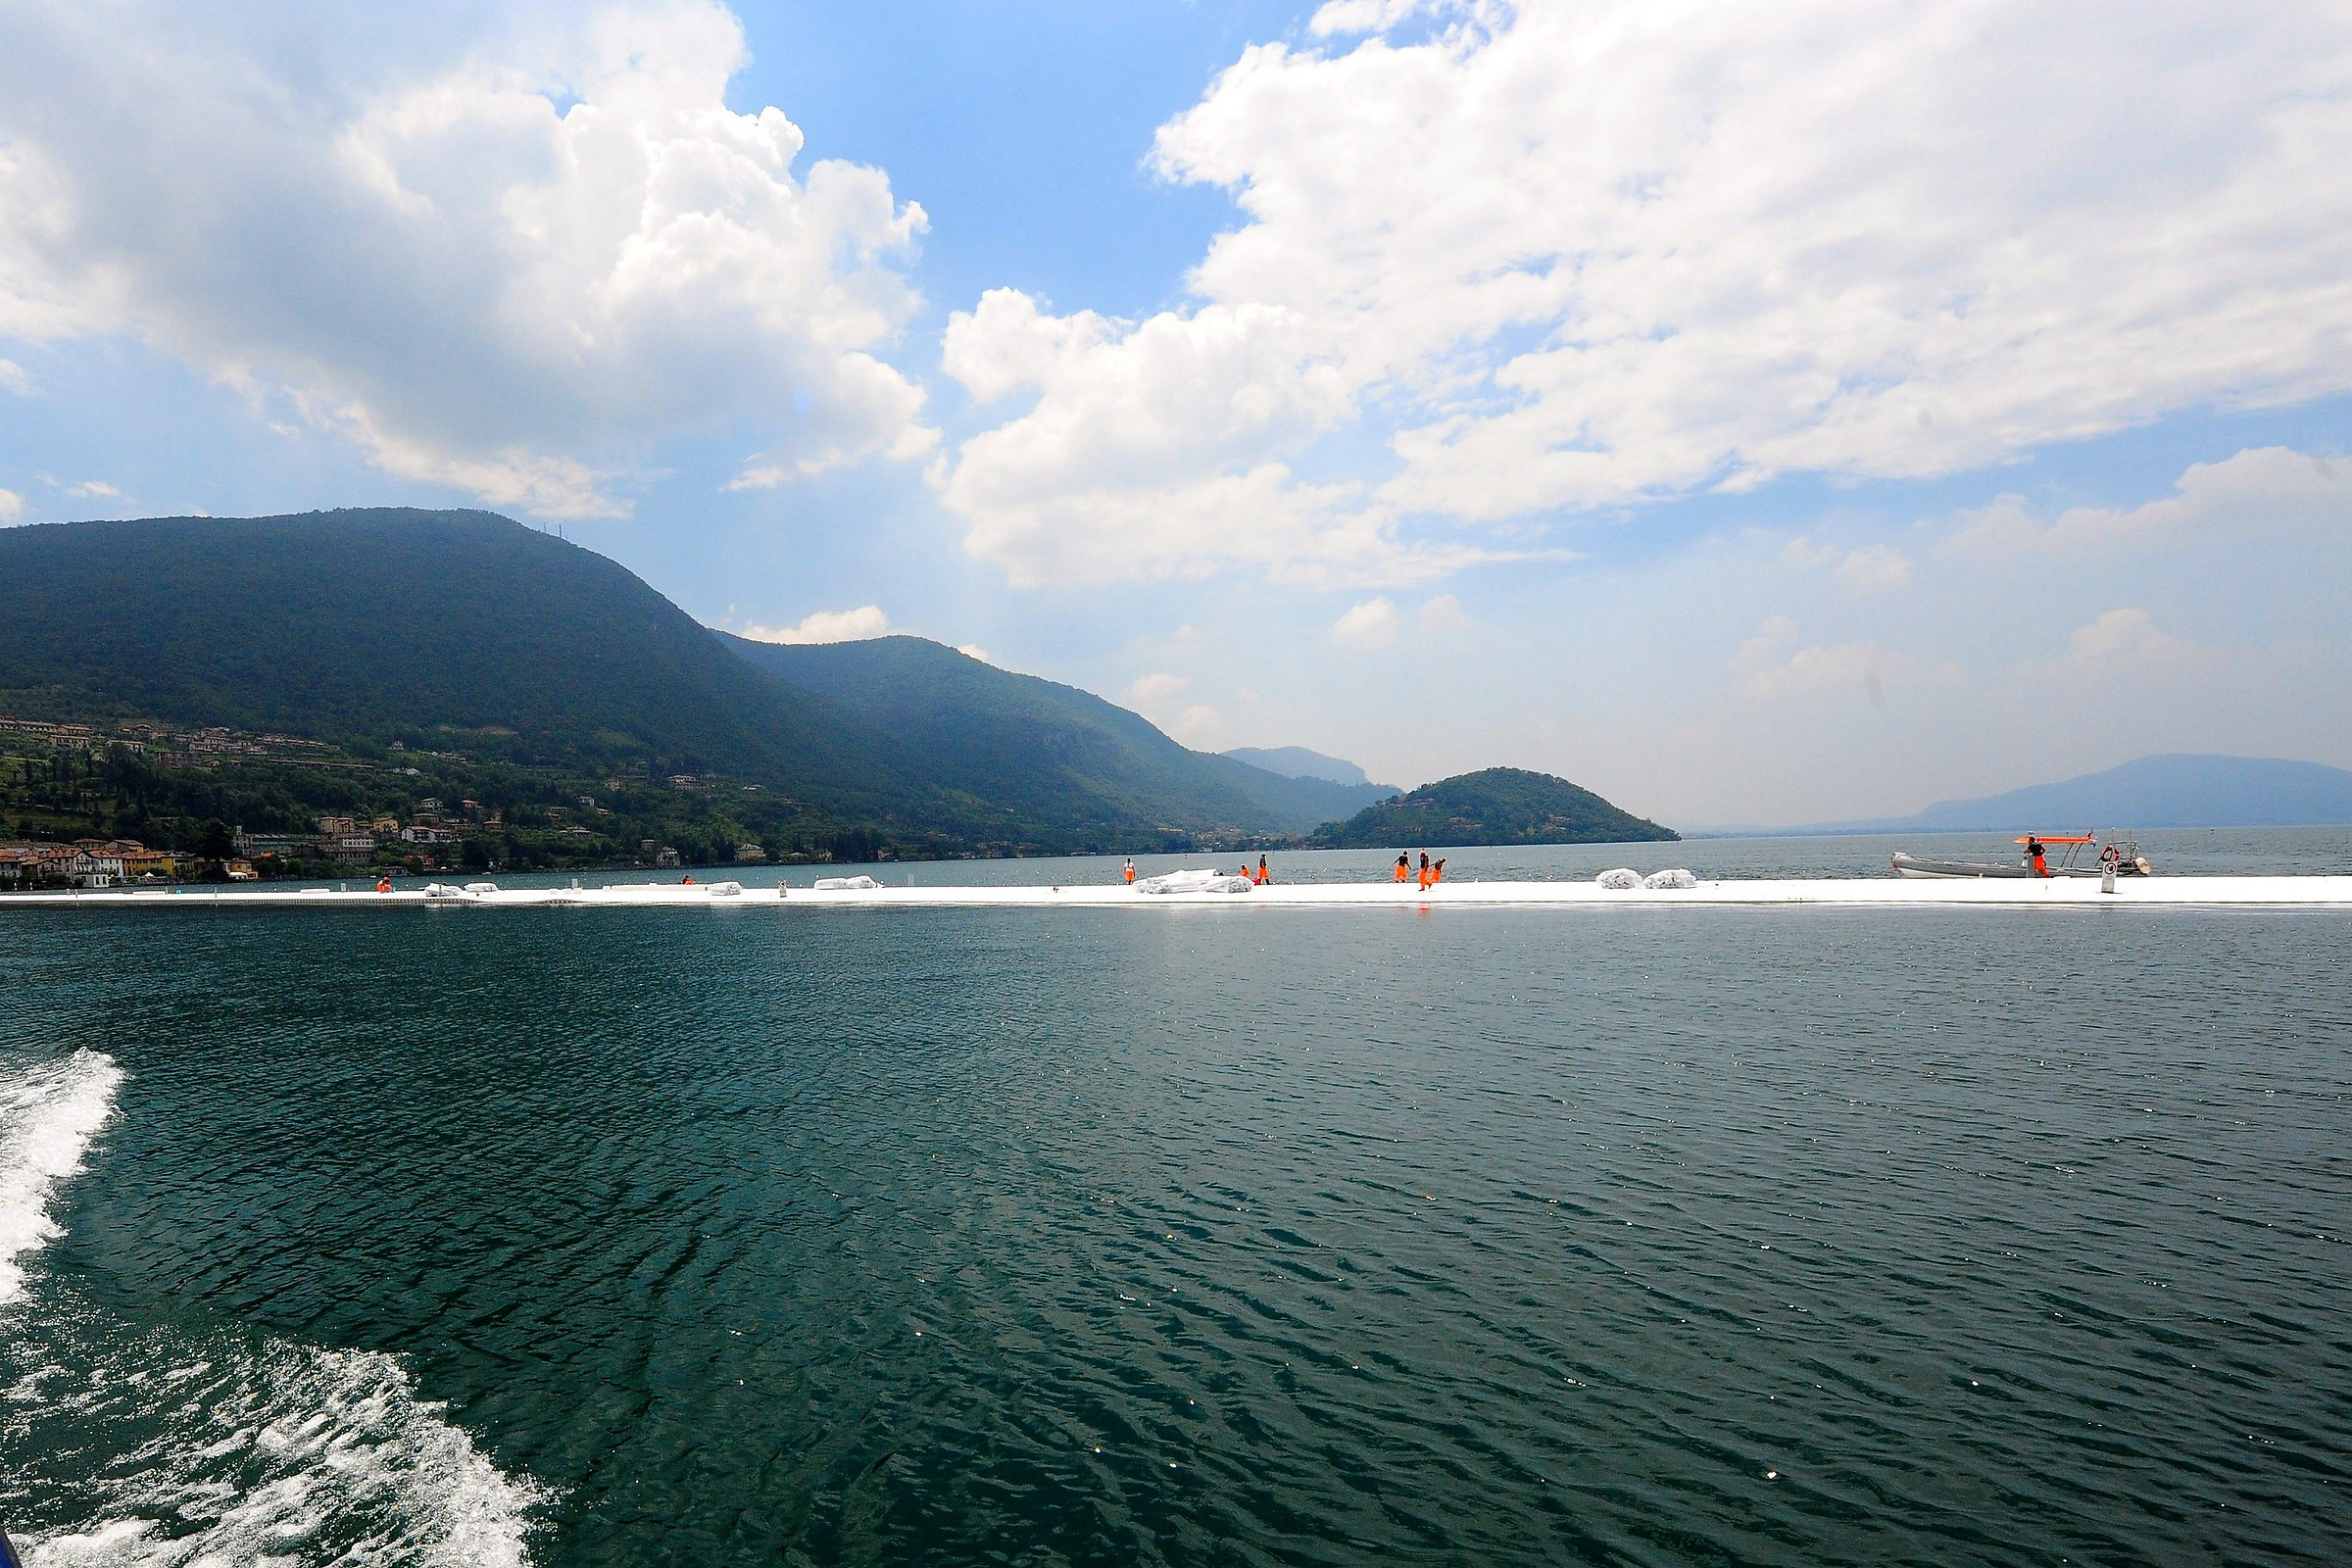 The Floating Piers...